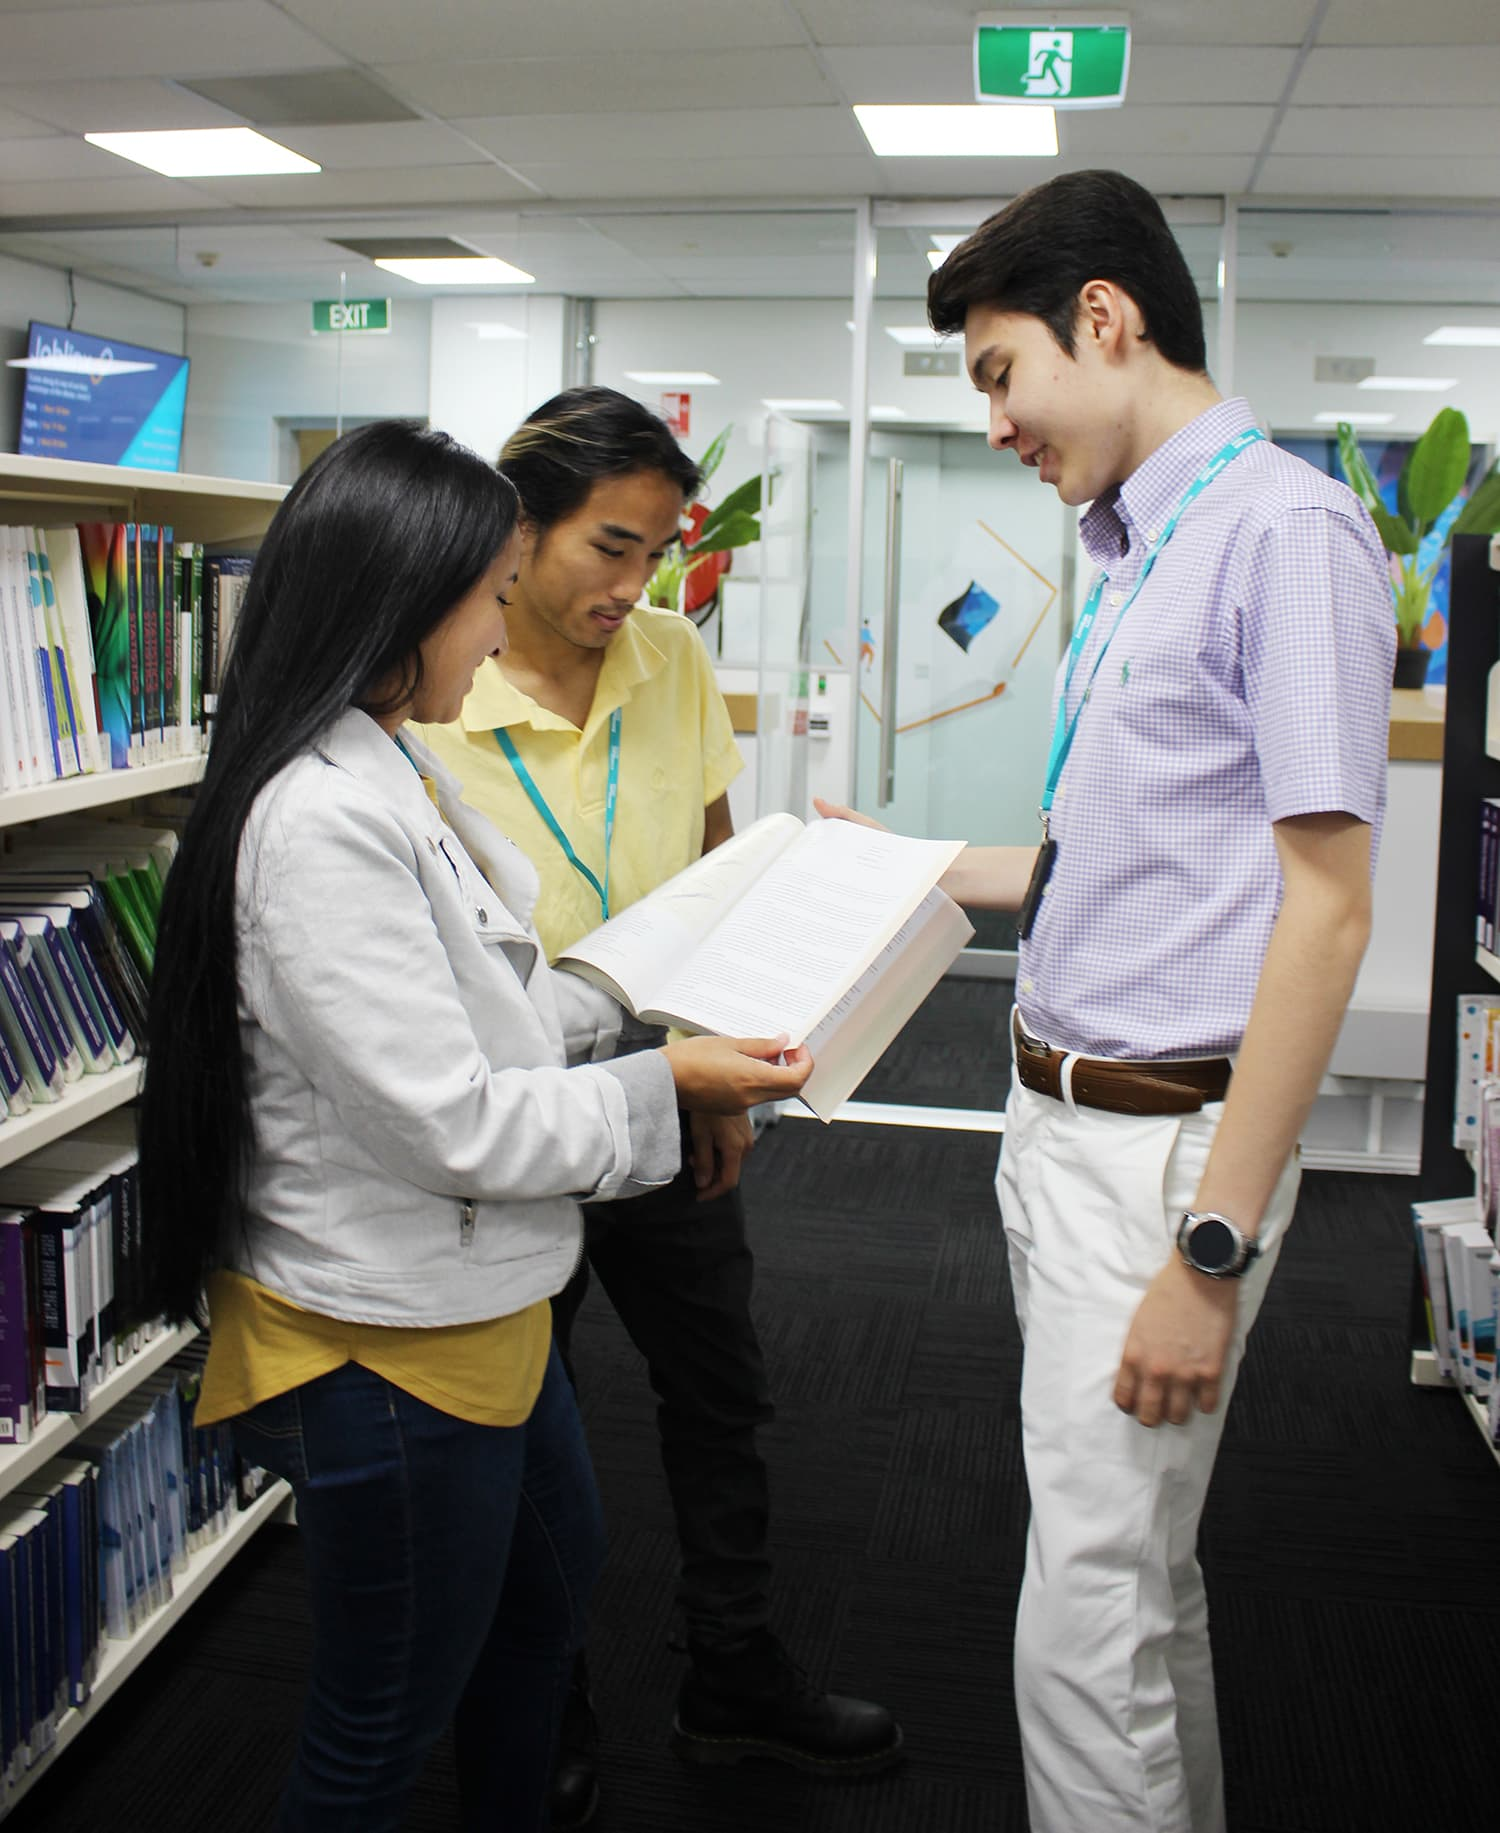 SRI students study in the Resource Centre on campus